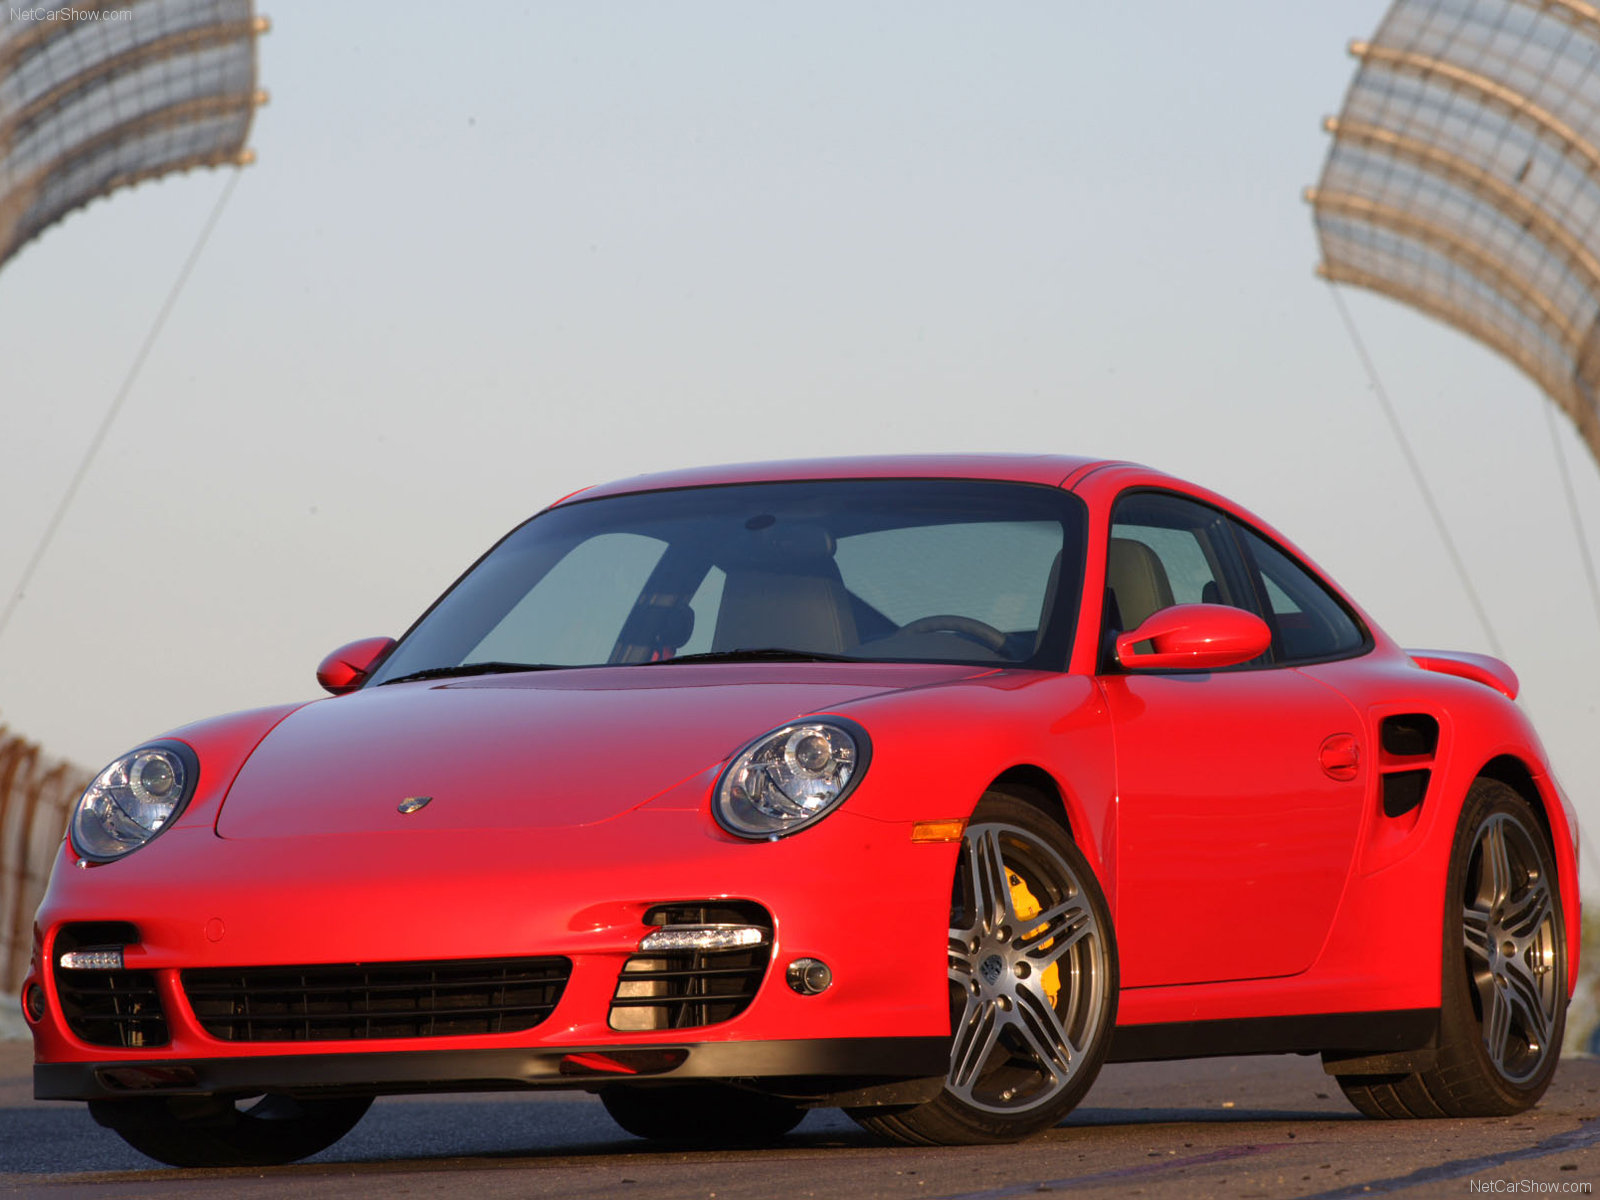 2007 Red Porsche 911 Turbo Wallpapers